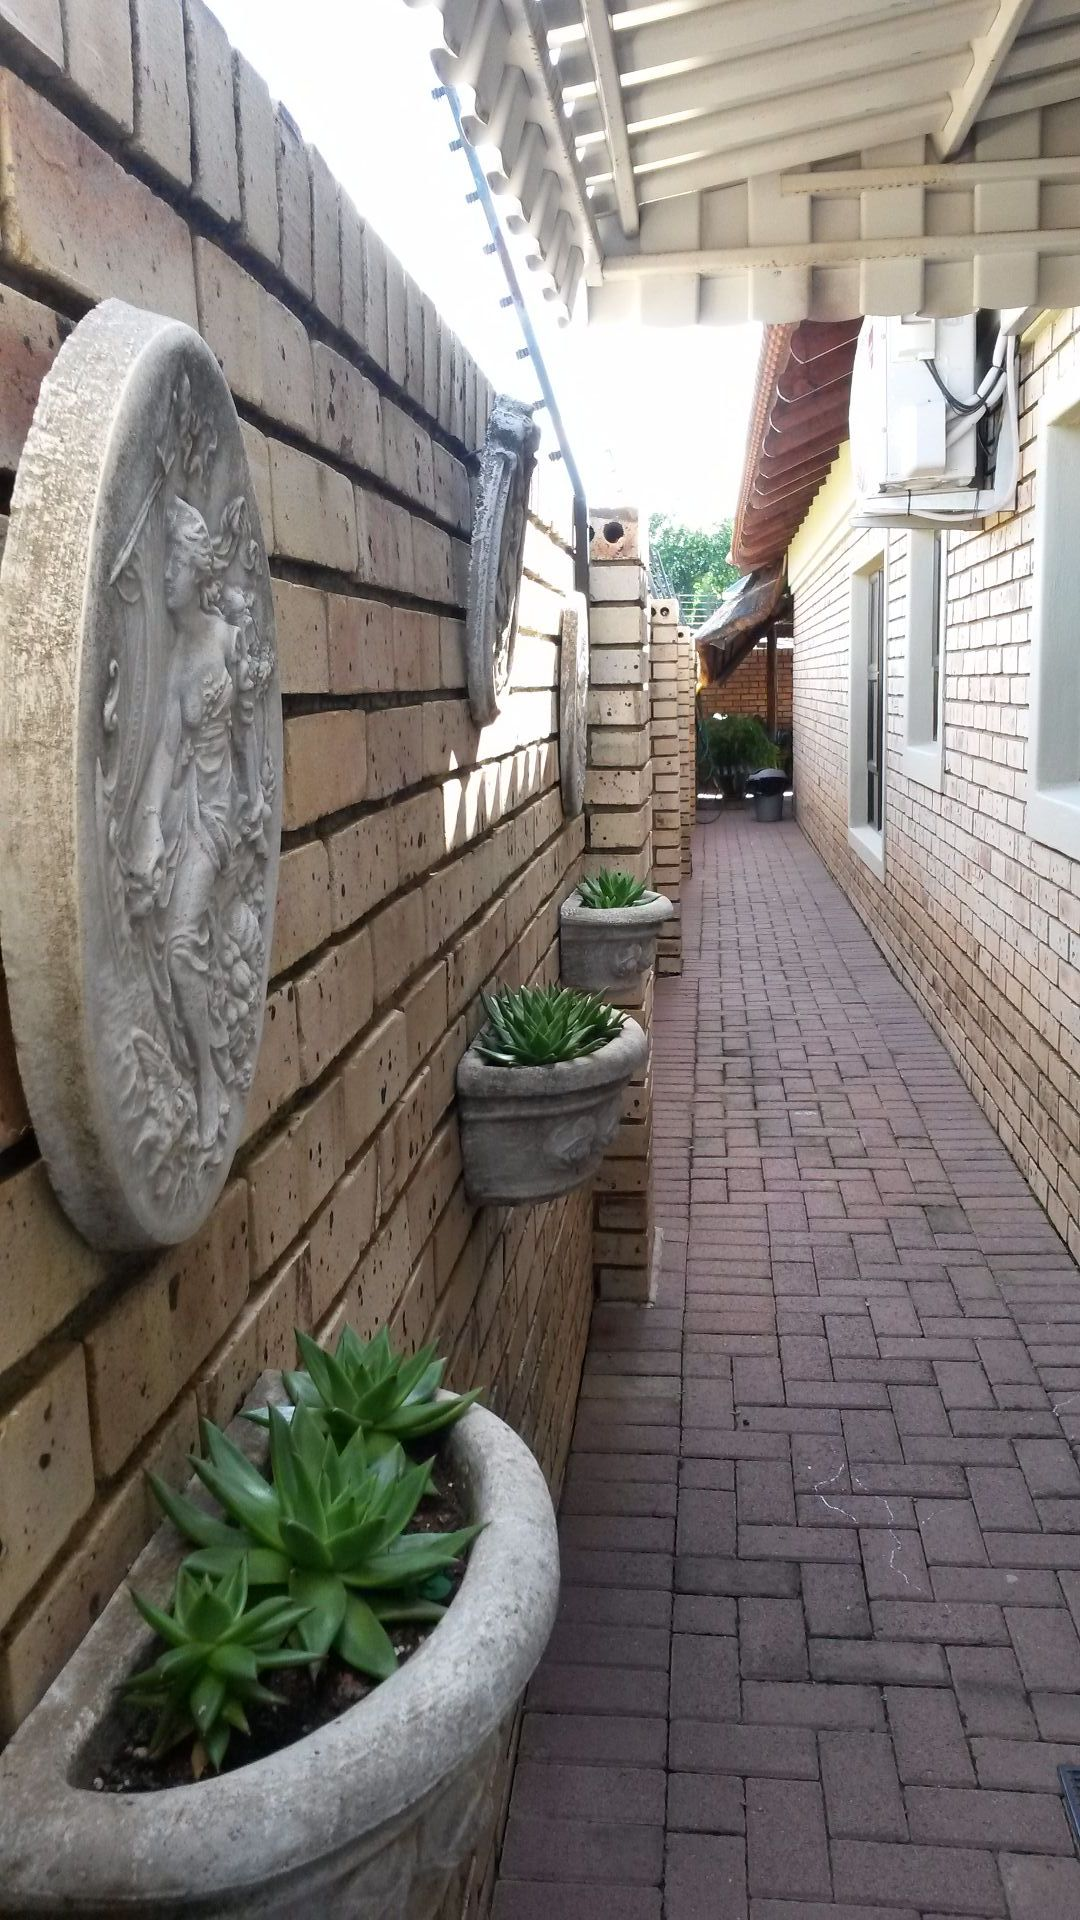 Potchefstroom Central property for sale. Ref No: 13463328. Picture no 6